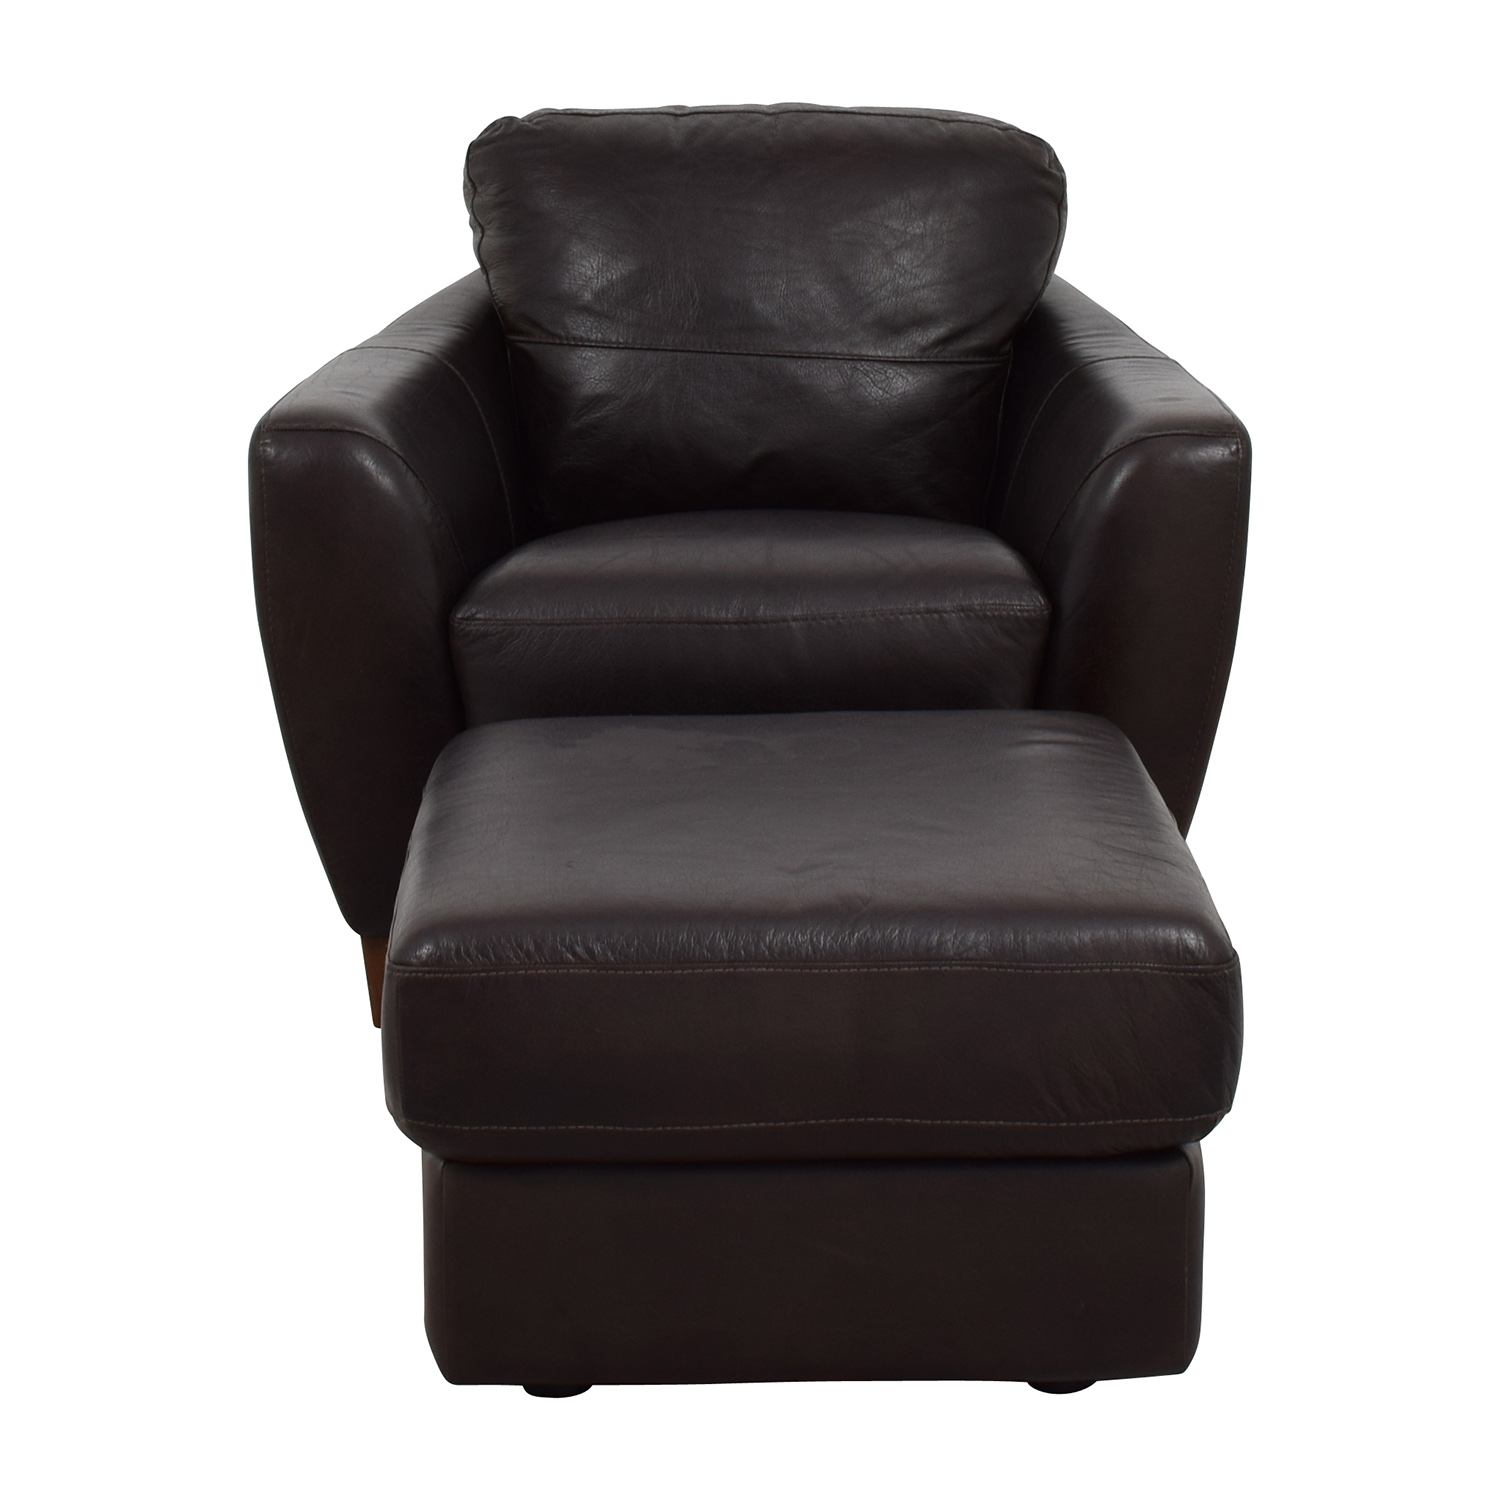 Brown Leather Chairs 64 Off Sofaitalia Sofitalia Dark Brown Leather Armchair And Ottoman Chairs